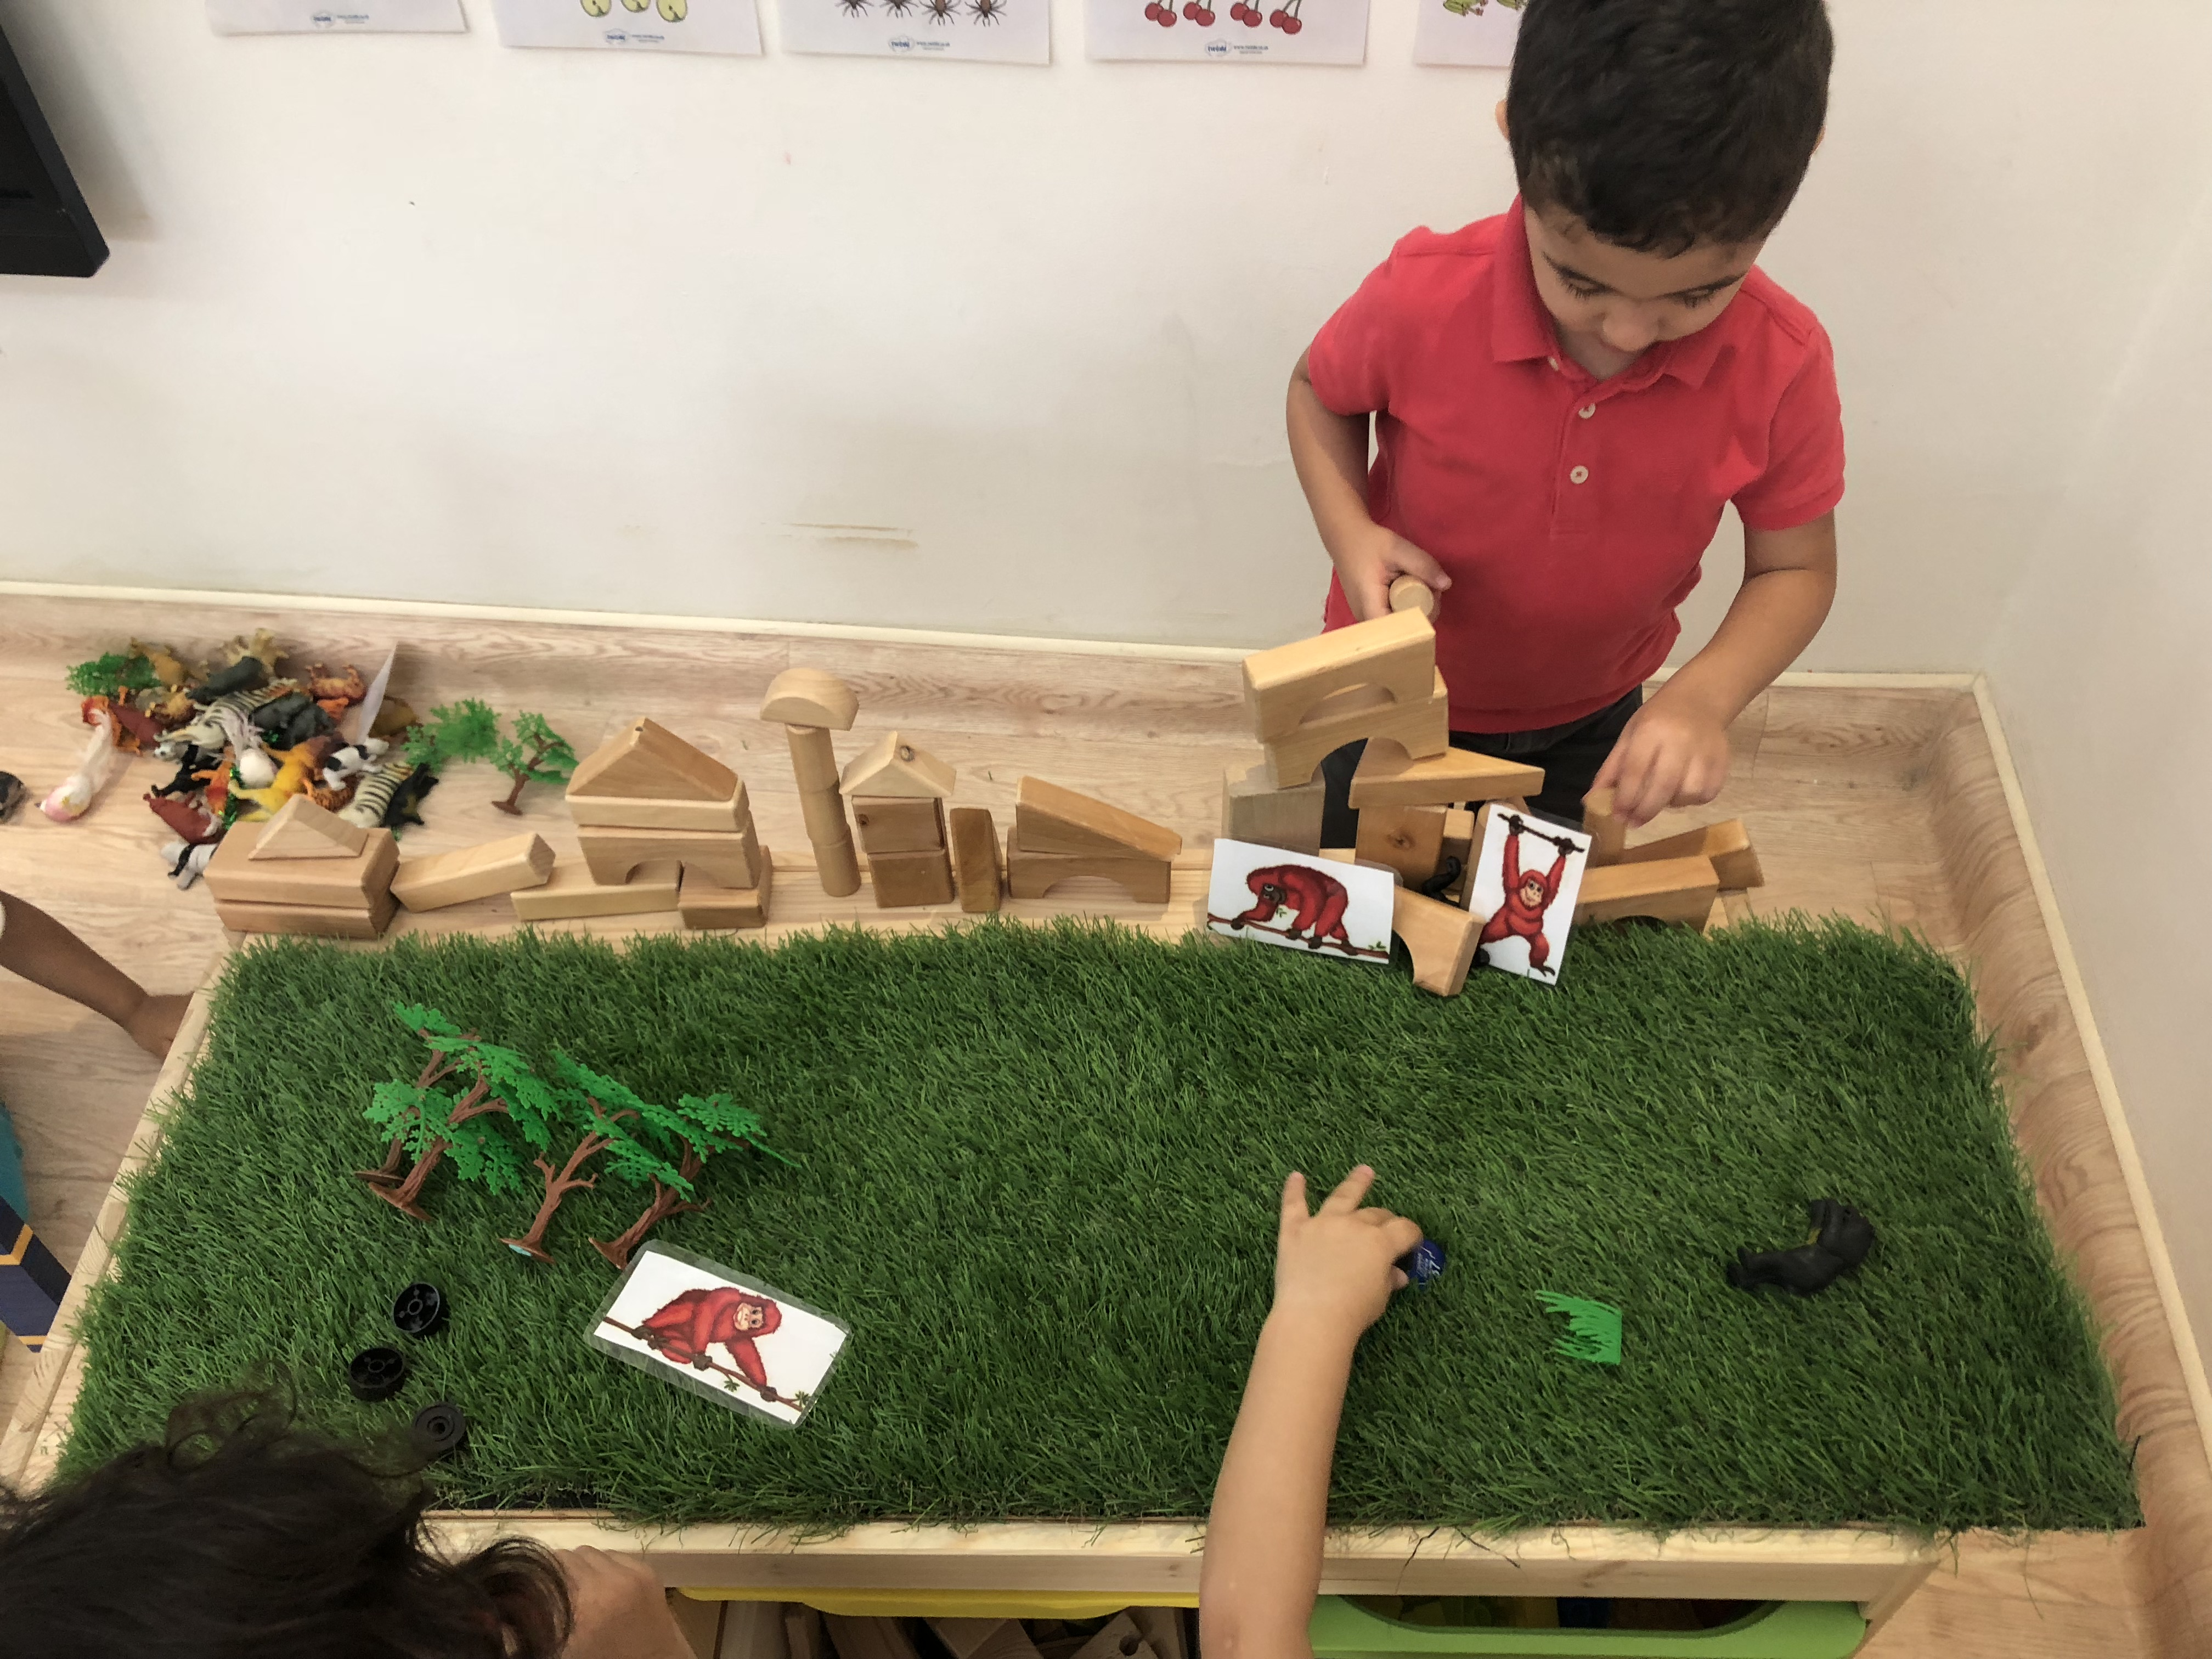 For this week's theme, 'in the jungle', the children took part in their first design-thinking project of the term. They read a compelling story about Filo, the orangutan, who lost his home, food, and livelihood to deforestation. The children gasped as they saw pictures of a beautiful forest before and after deforestation in Borneo. The […]